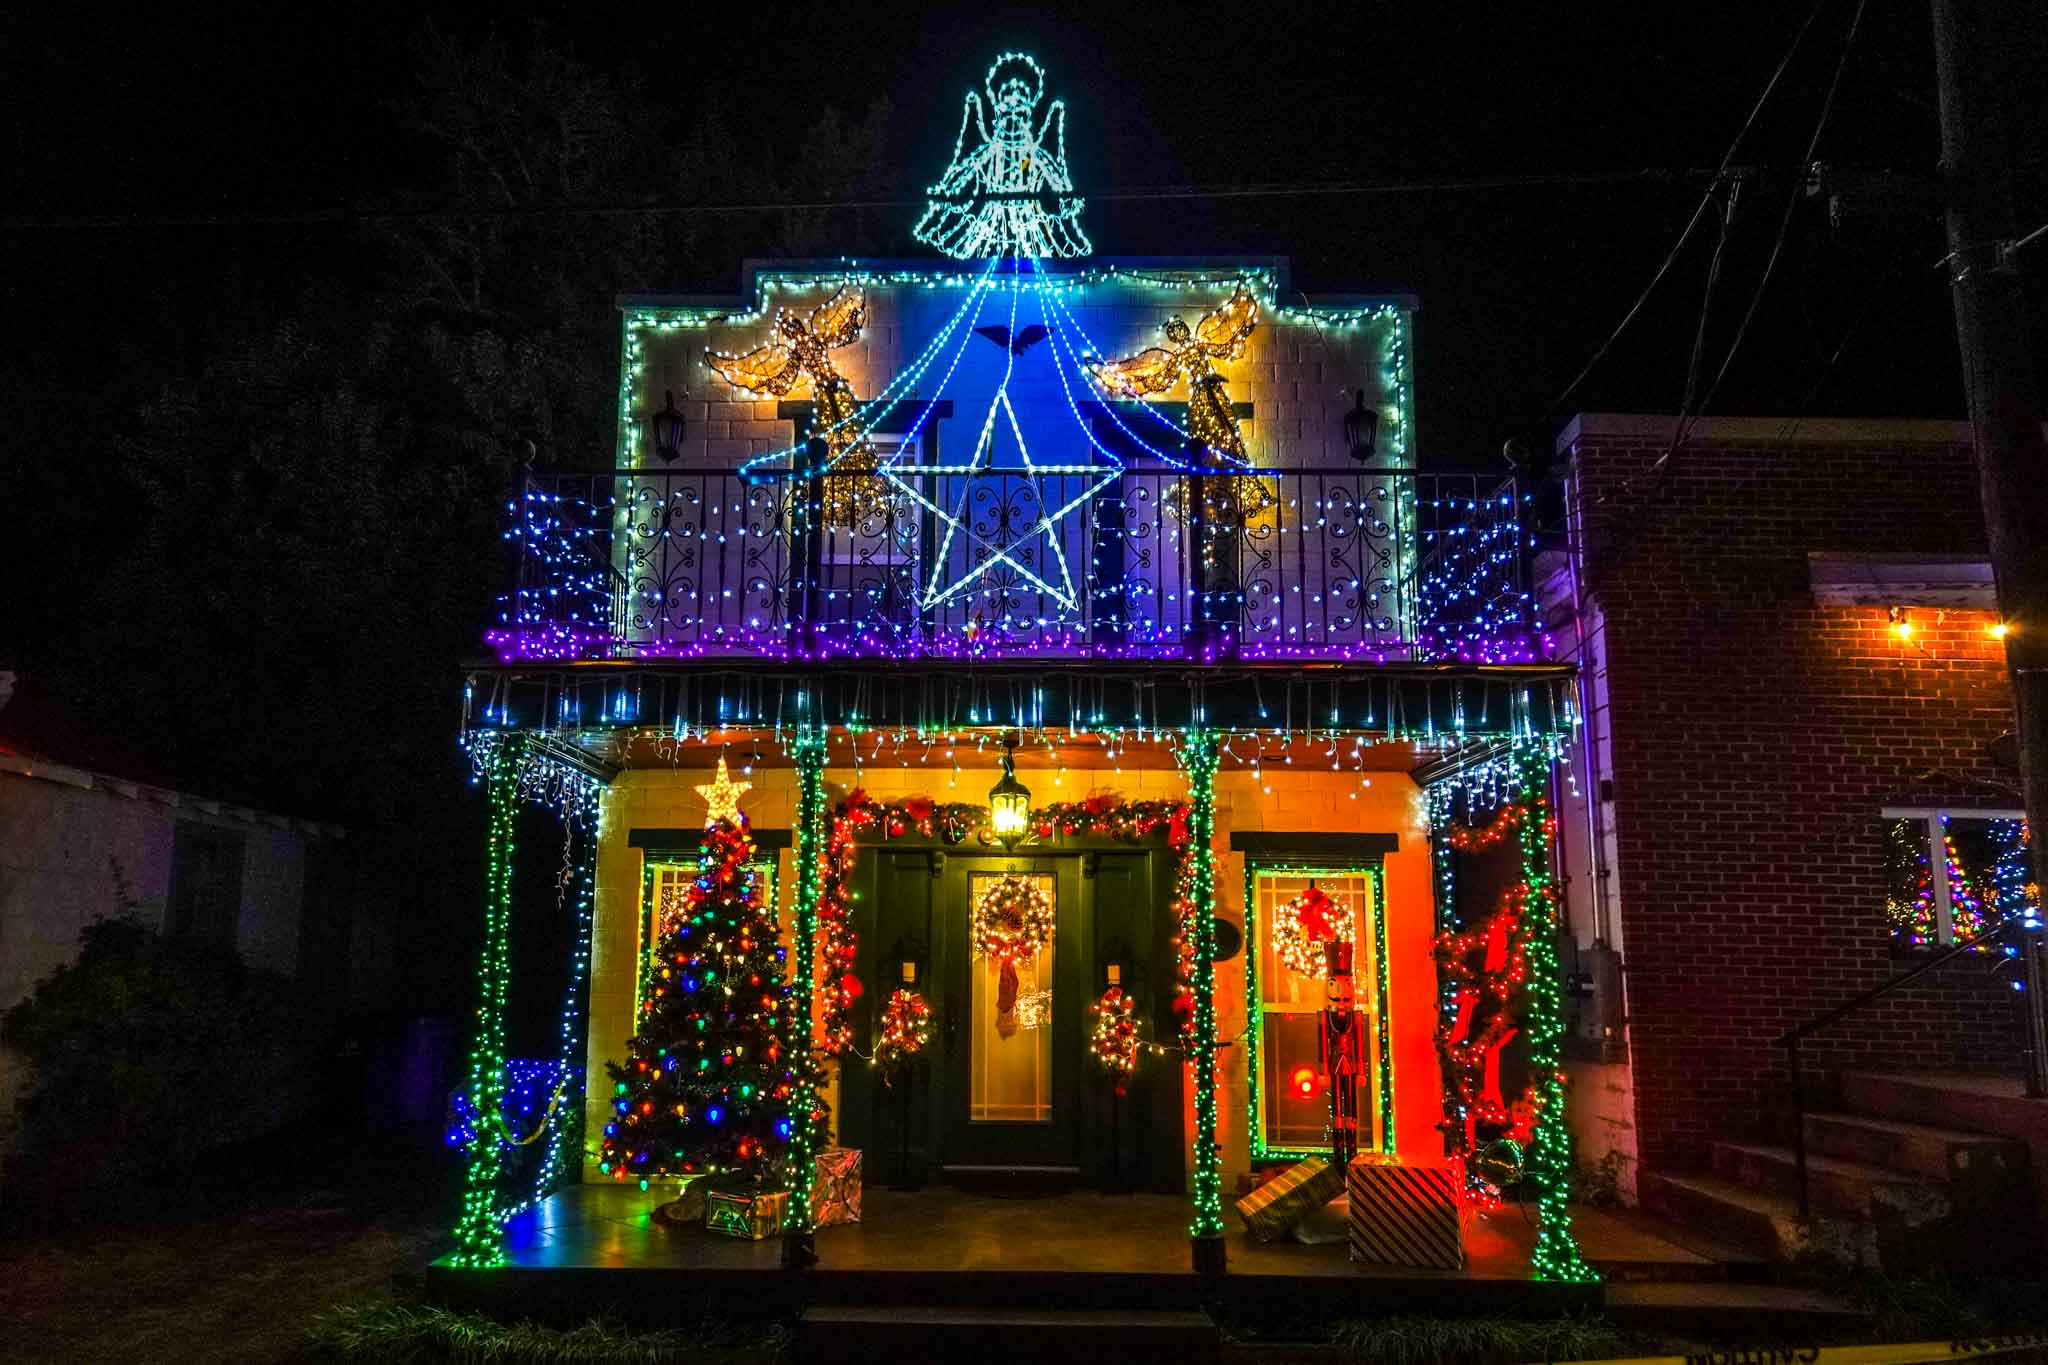 Building decorated with colorful Christmas lights and topped by an angel light sculpture